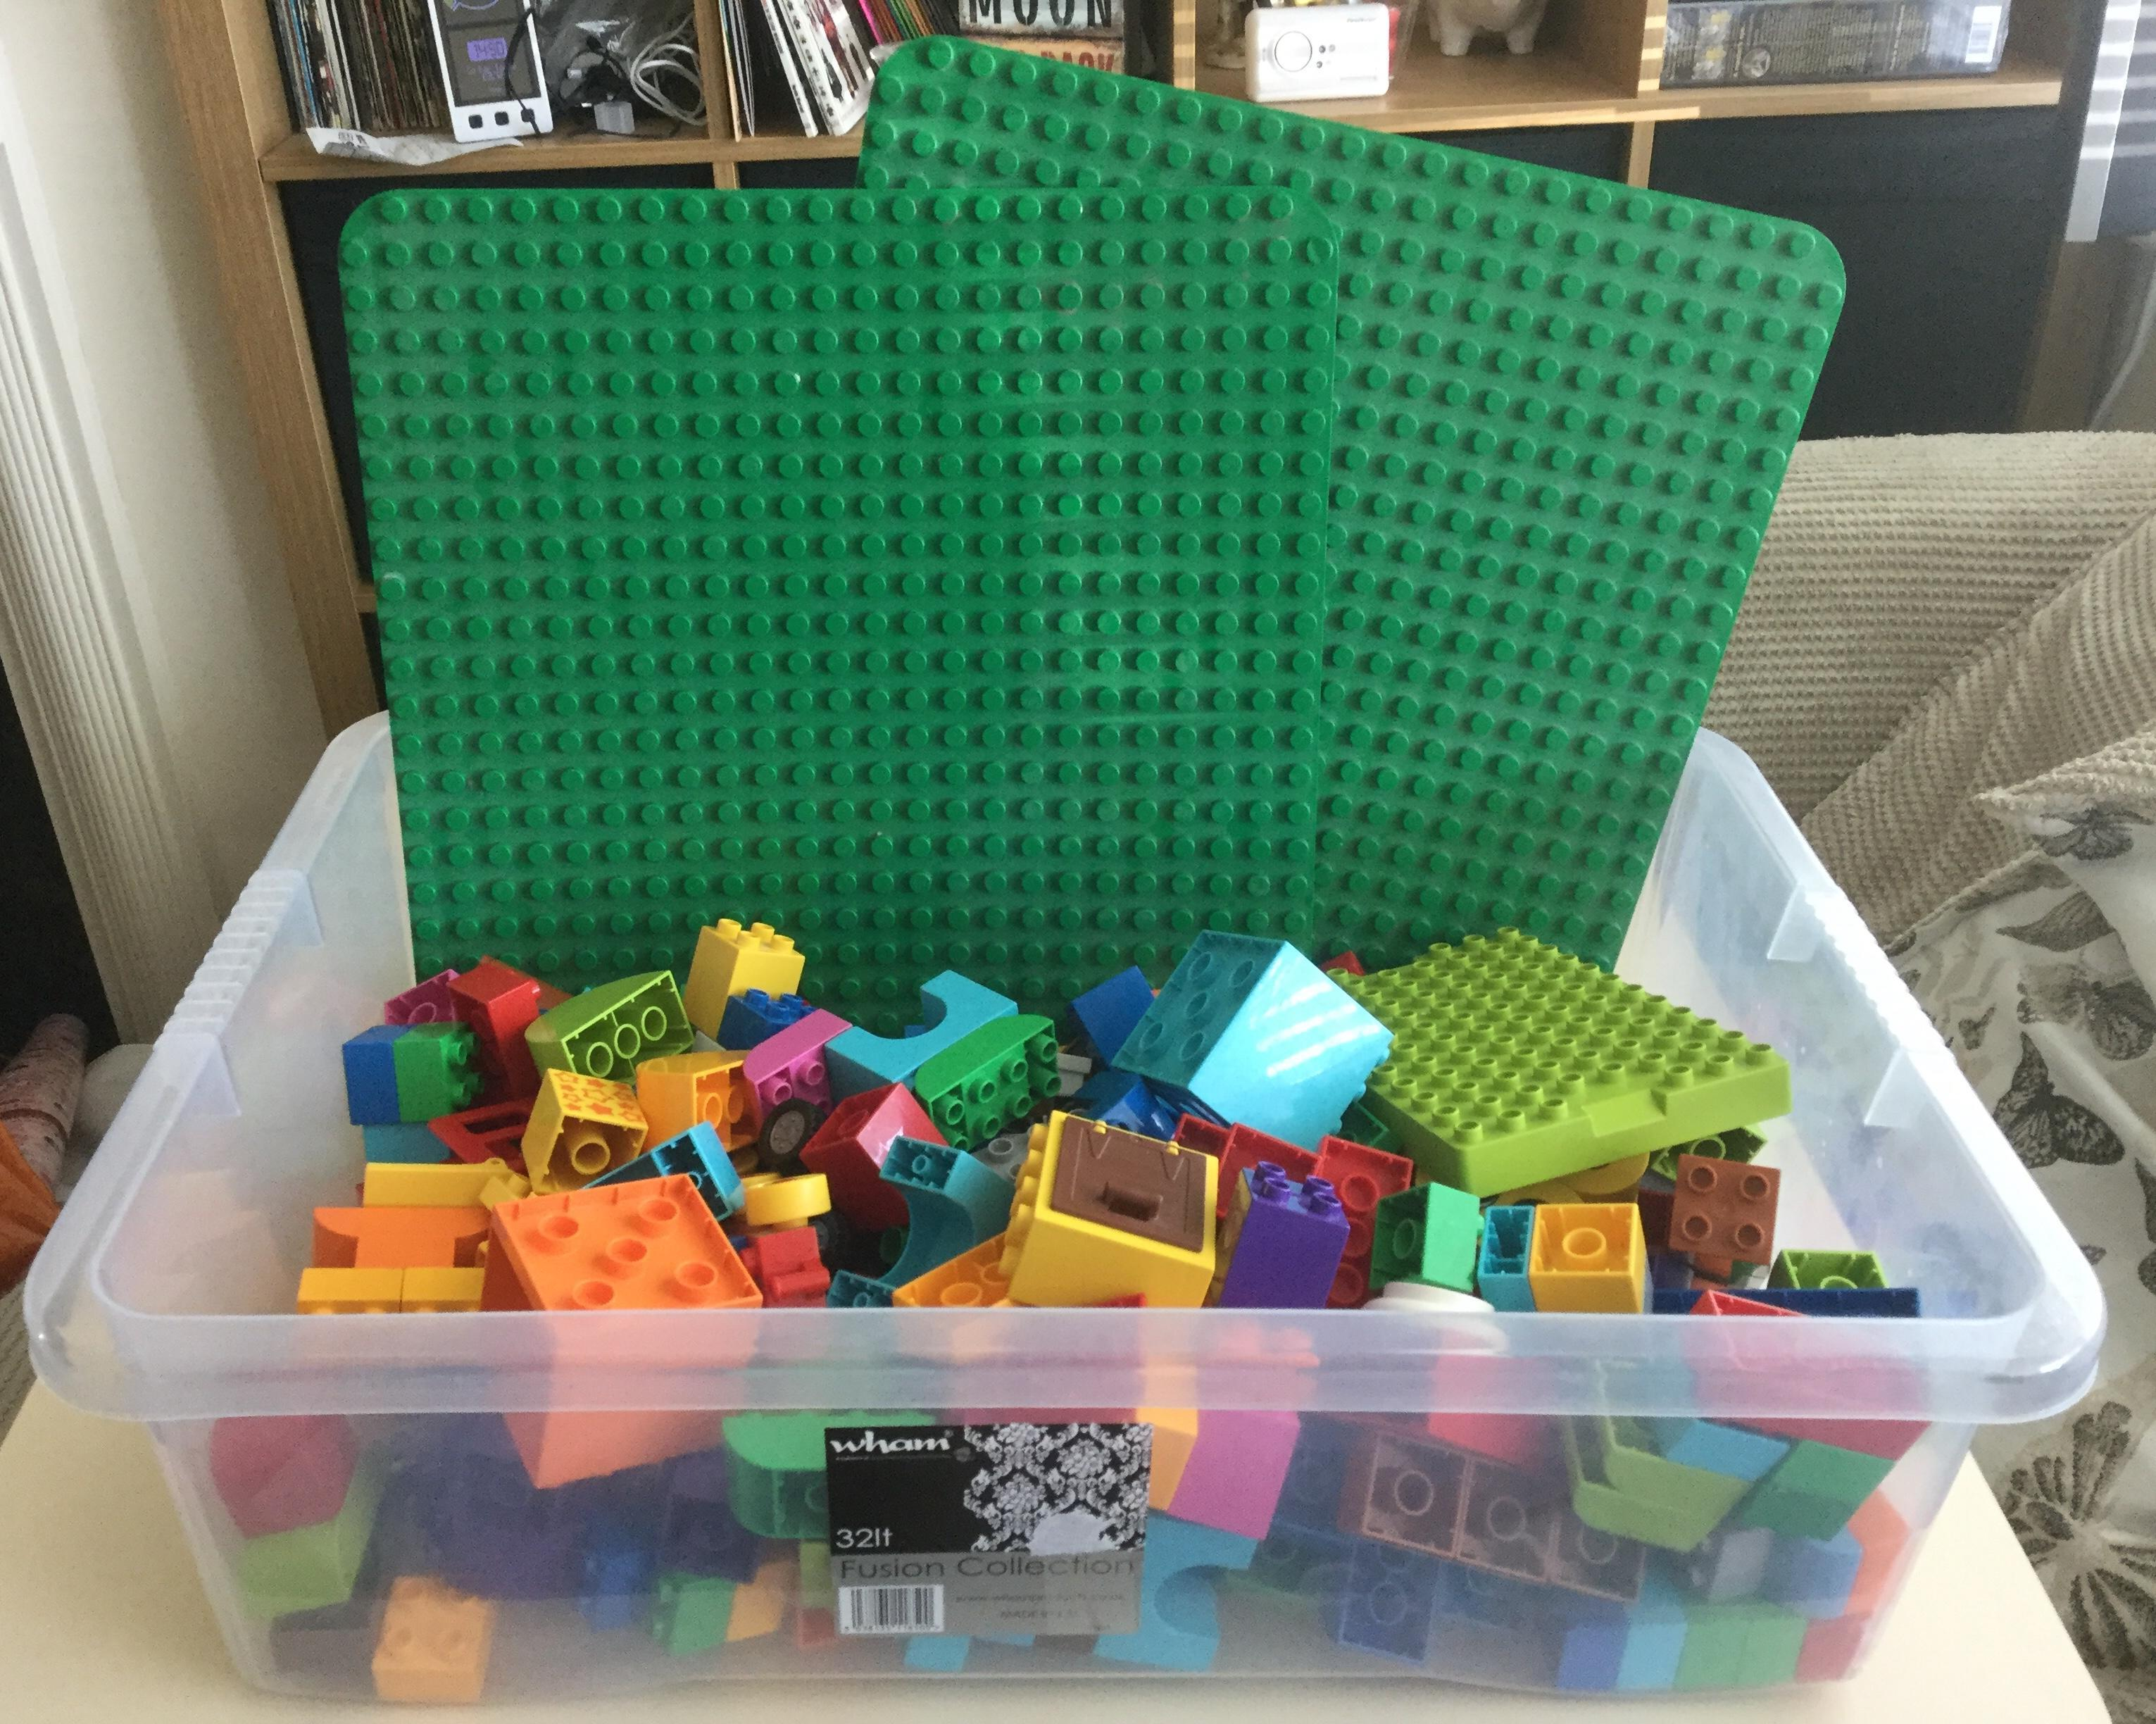 Lego Duplo - not £40 open to offers